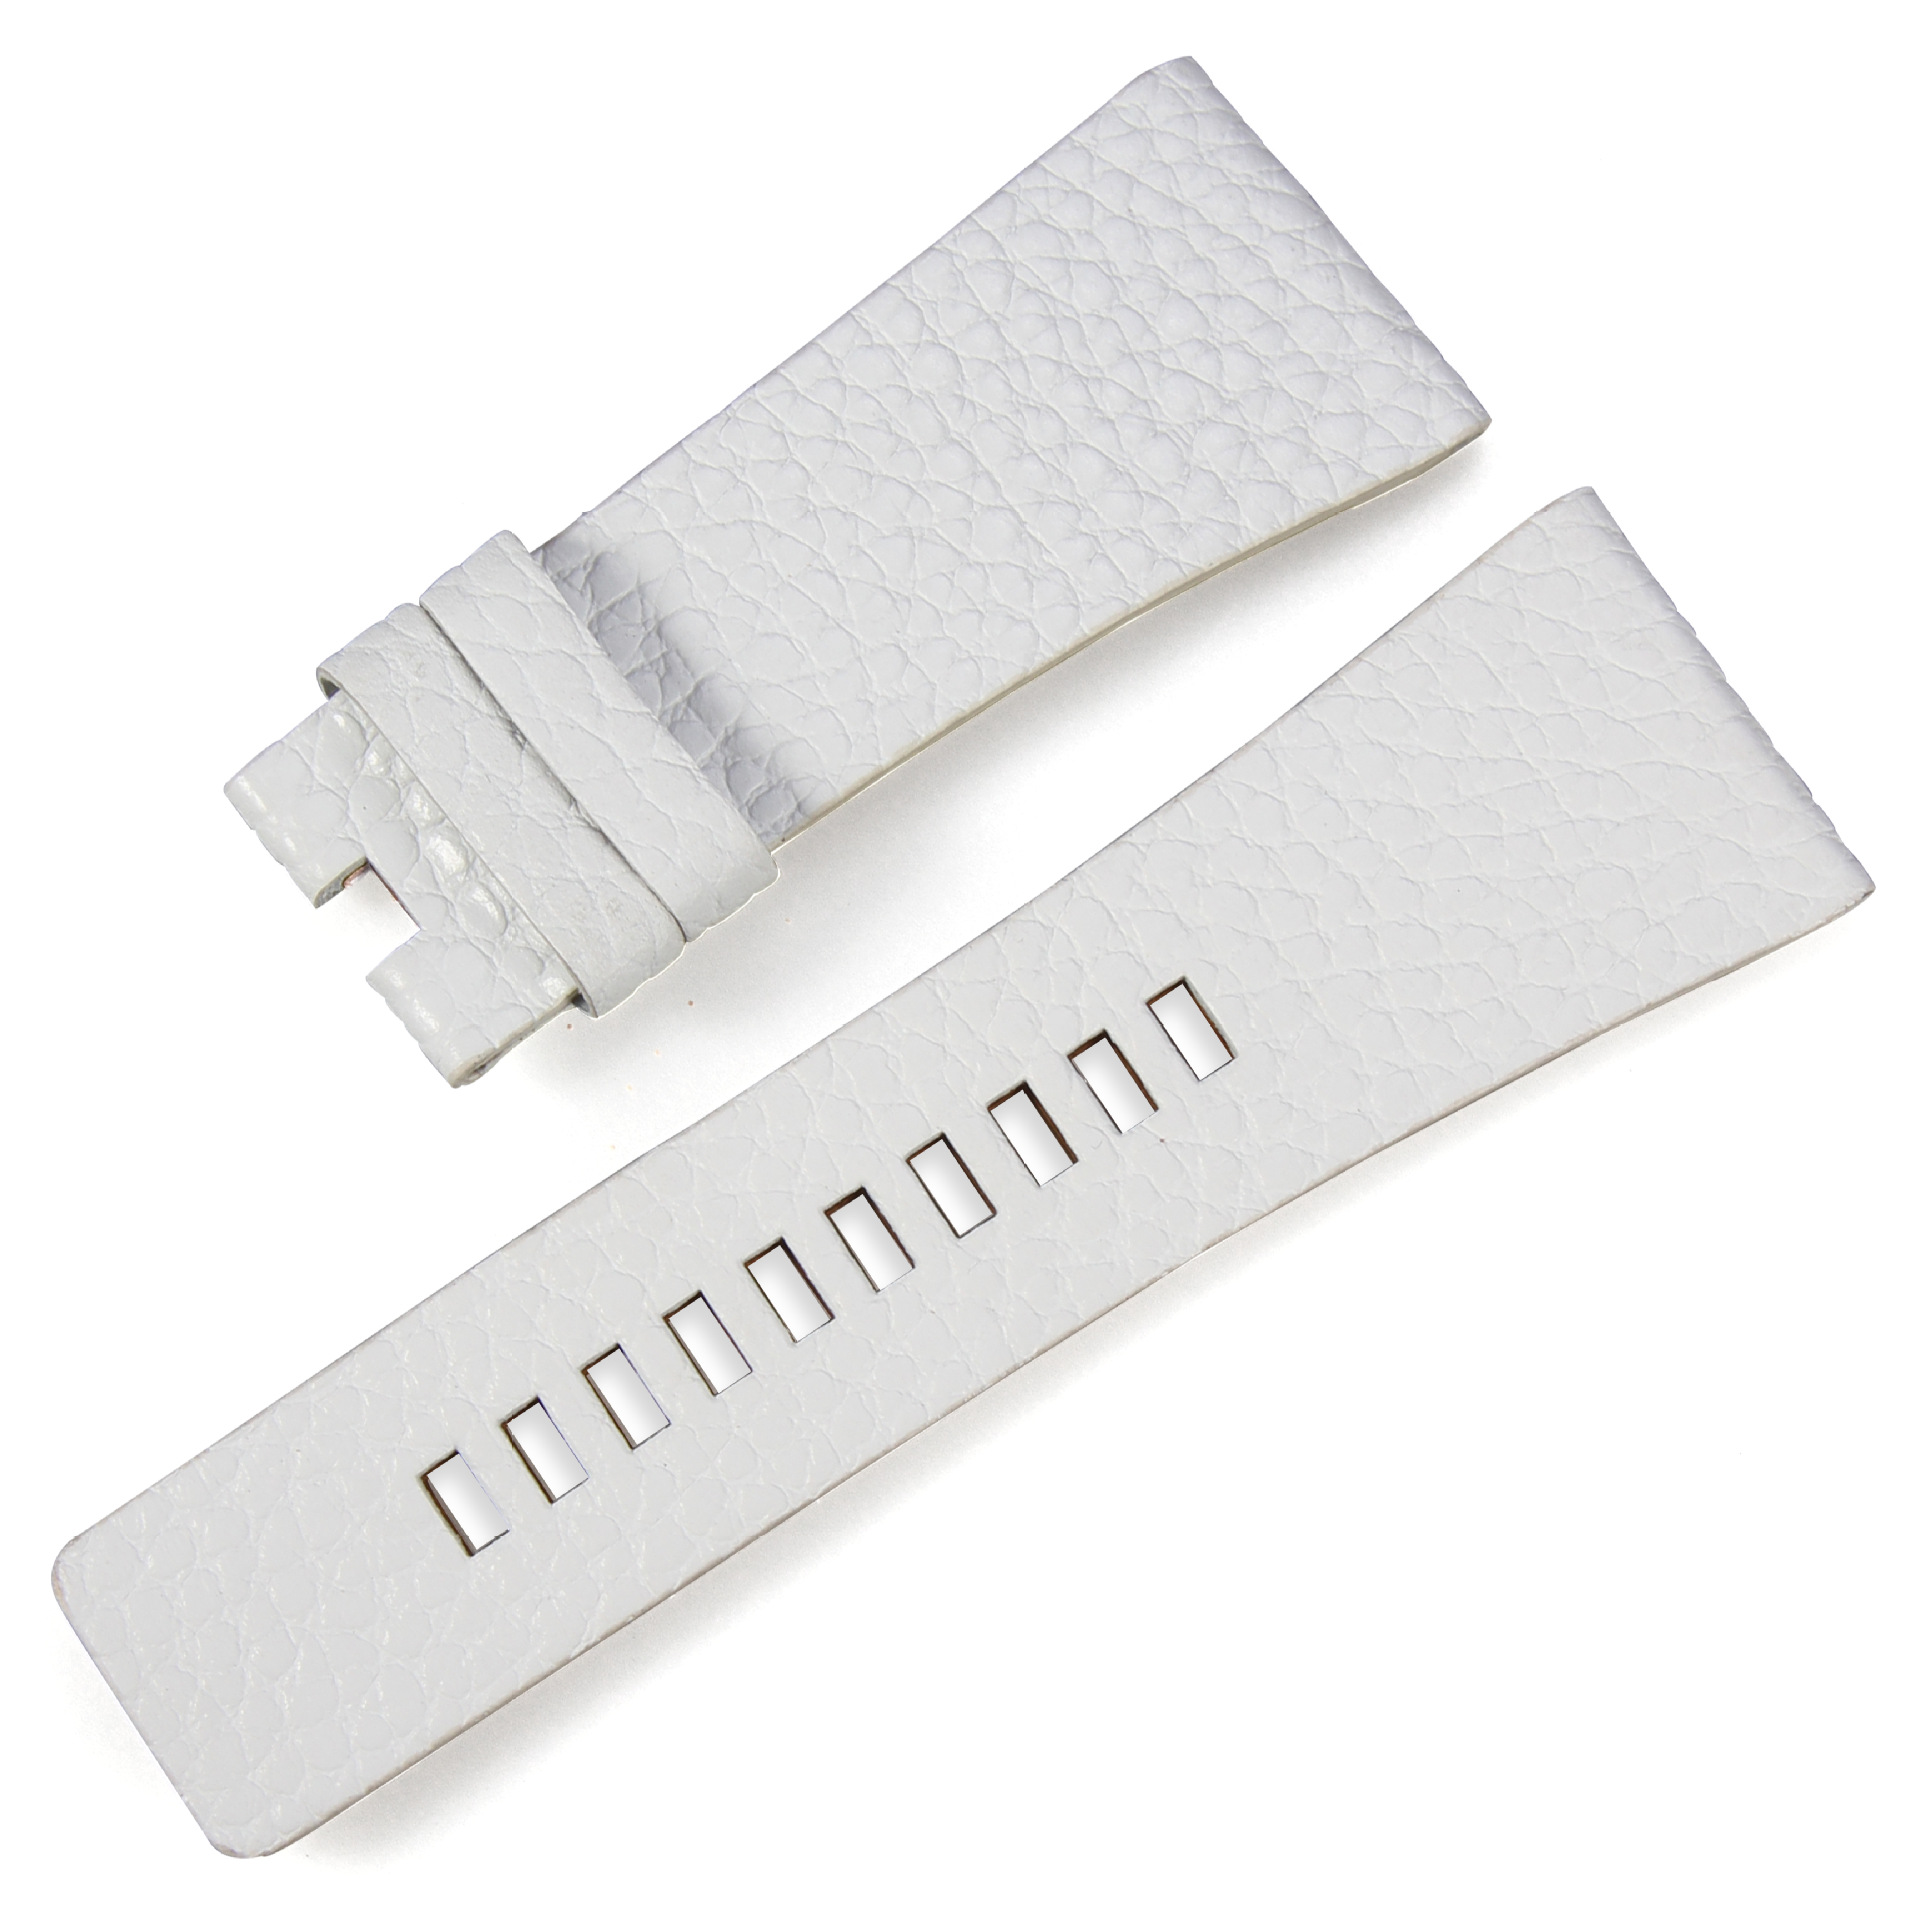 women men watchband litchi Texture white Genuine Leather Strap Suitable for DIESEL watch  24mm 26mm 28mm Brand Watch Accessories strap